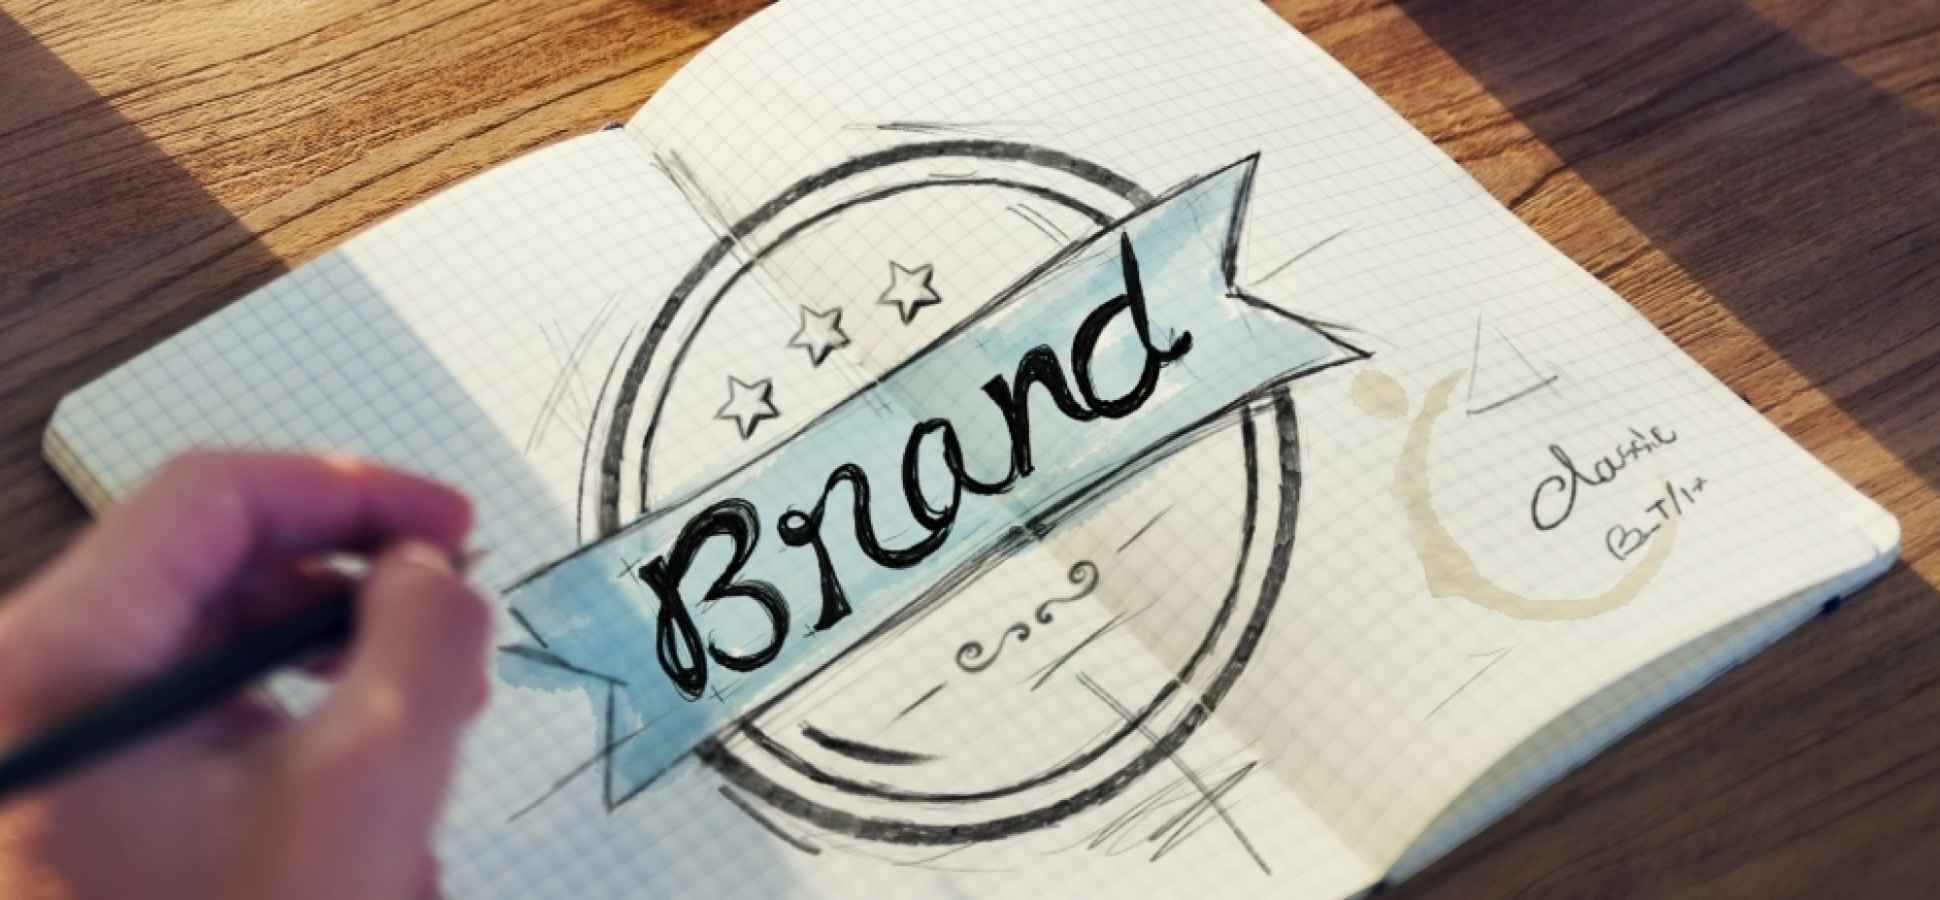 3 Tips for Turning a Company Into a Brand